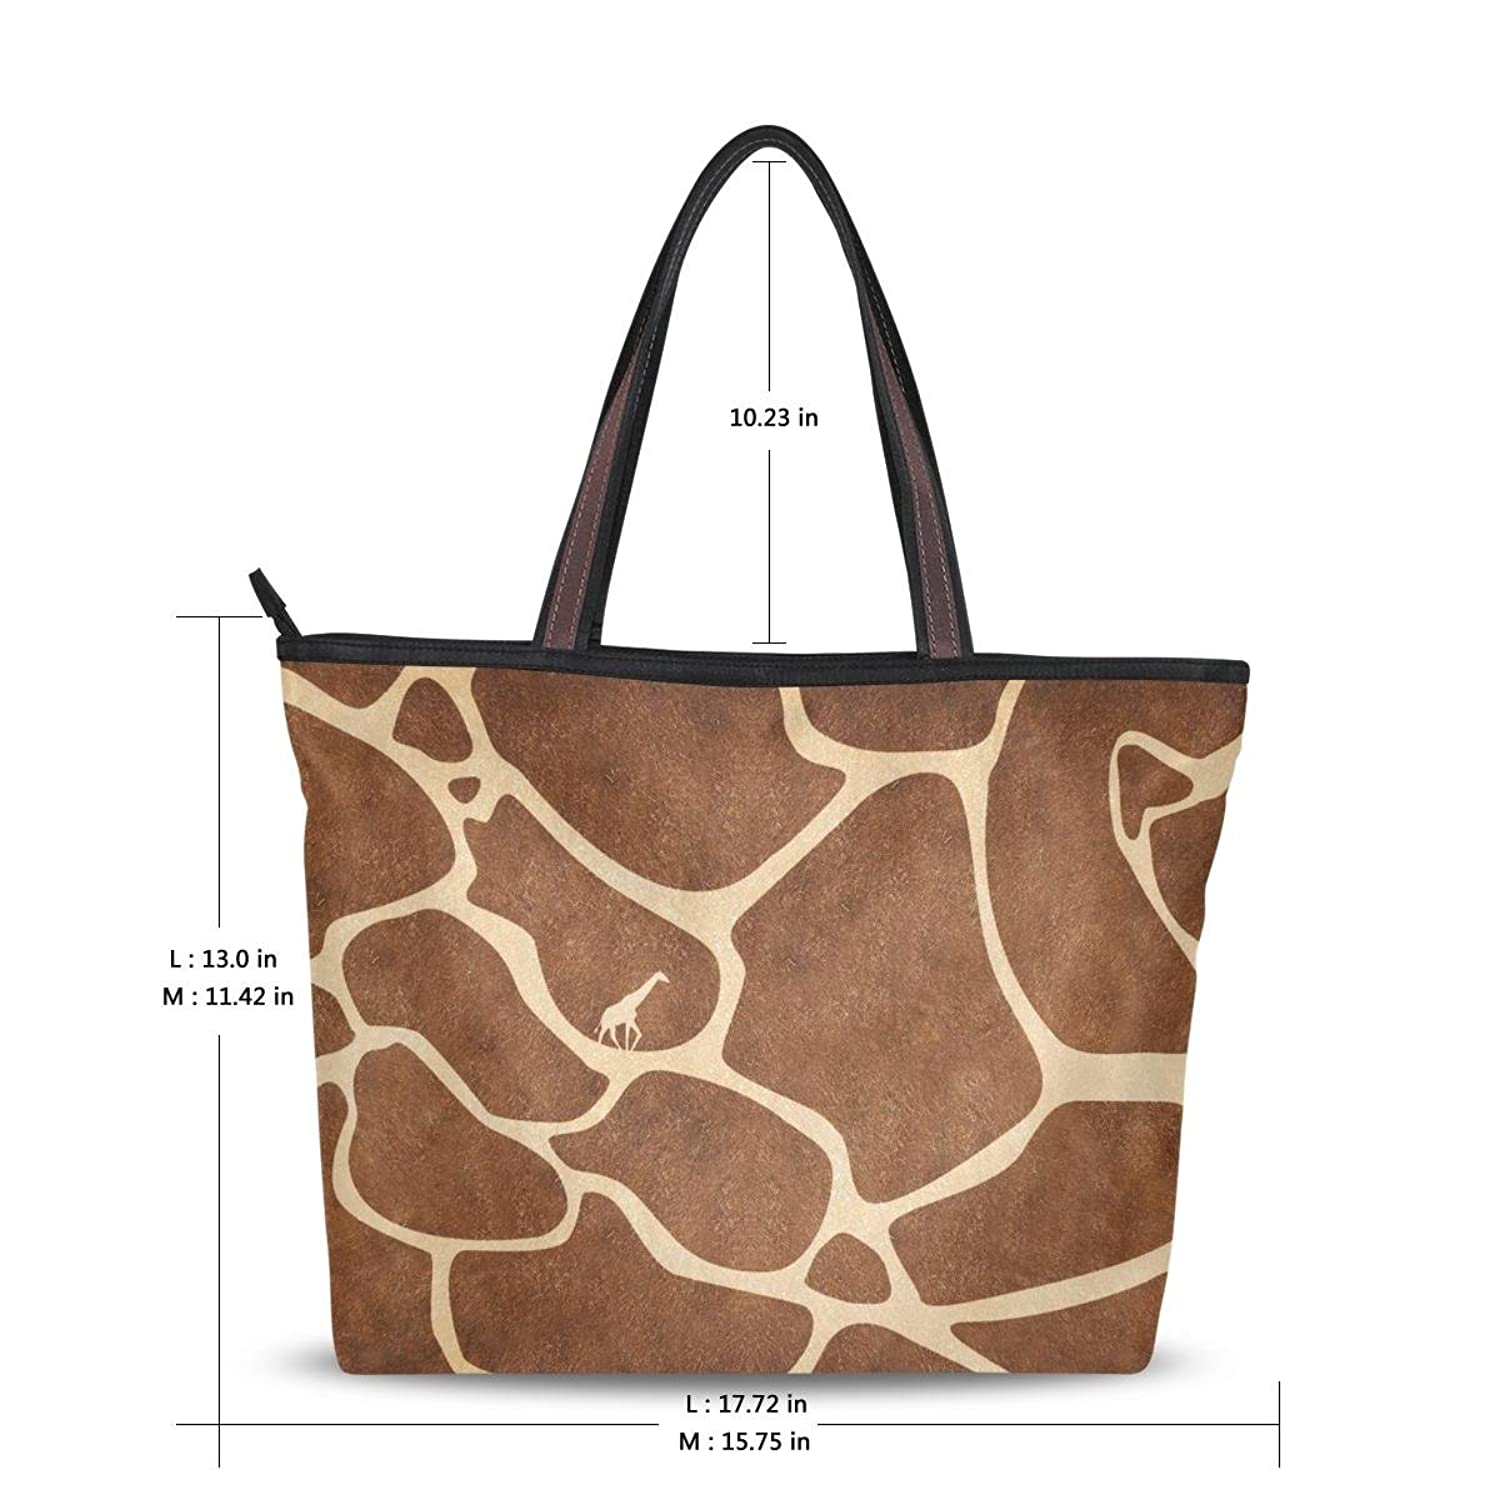 Women's New Fashion Handbag Shoulder Bags 2016,Pretty Giraffe Print,Tote Bag